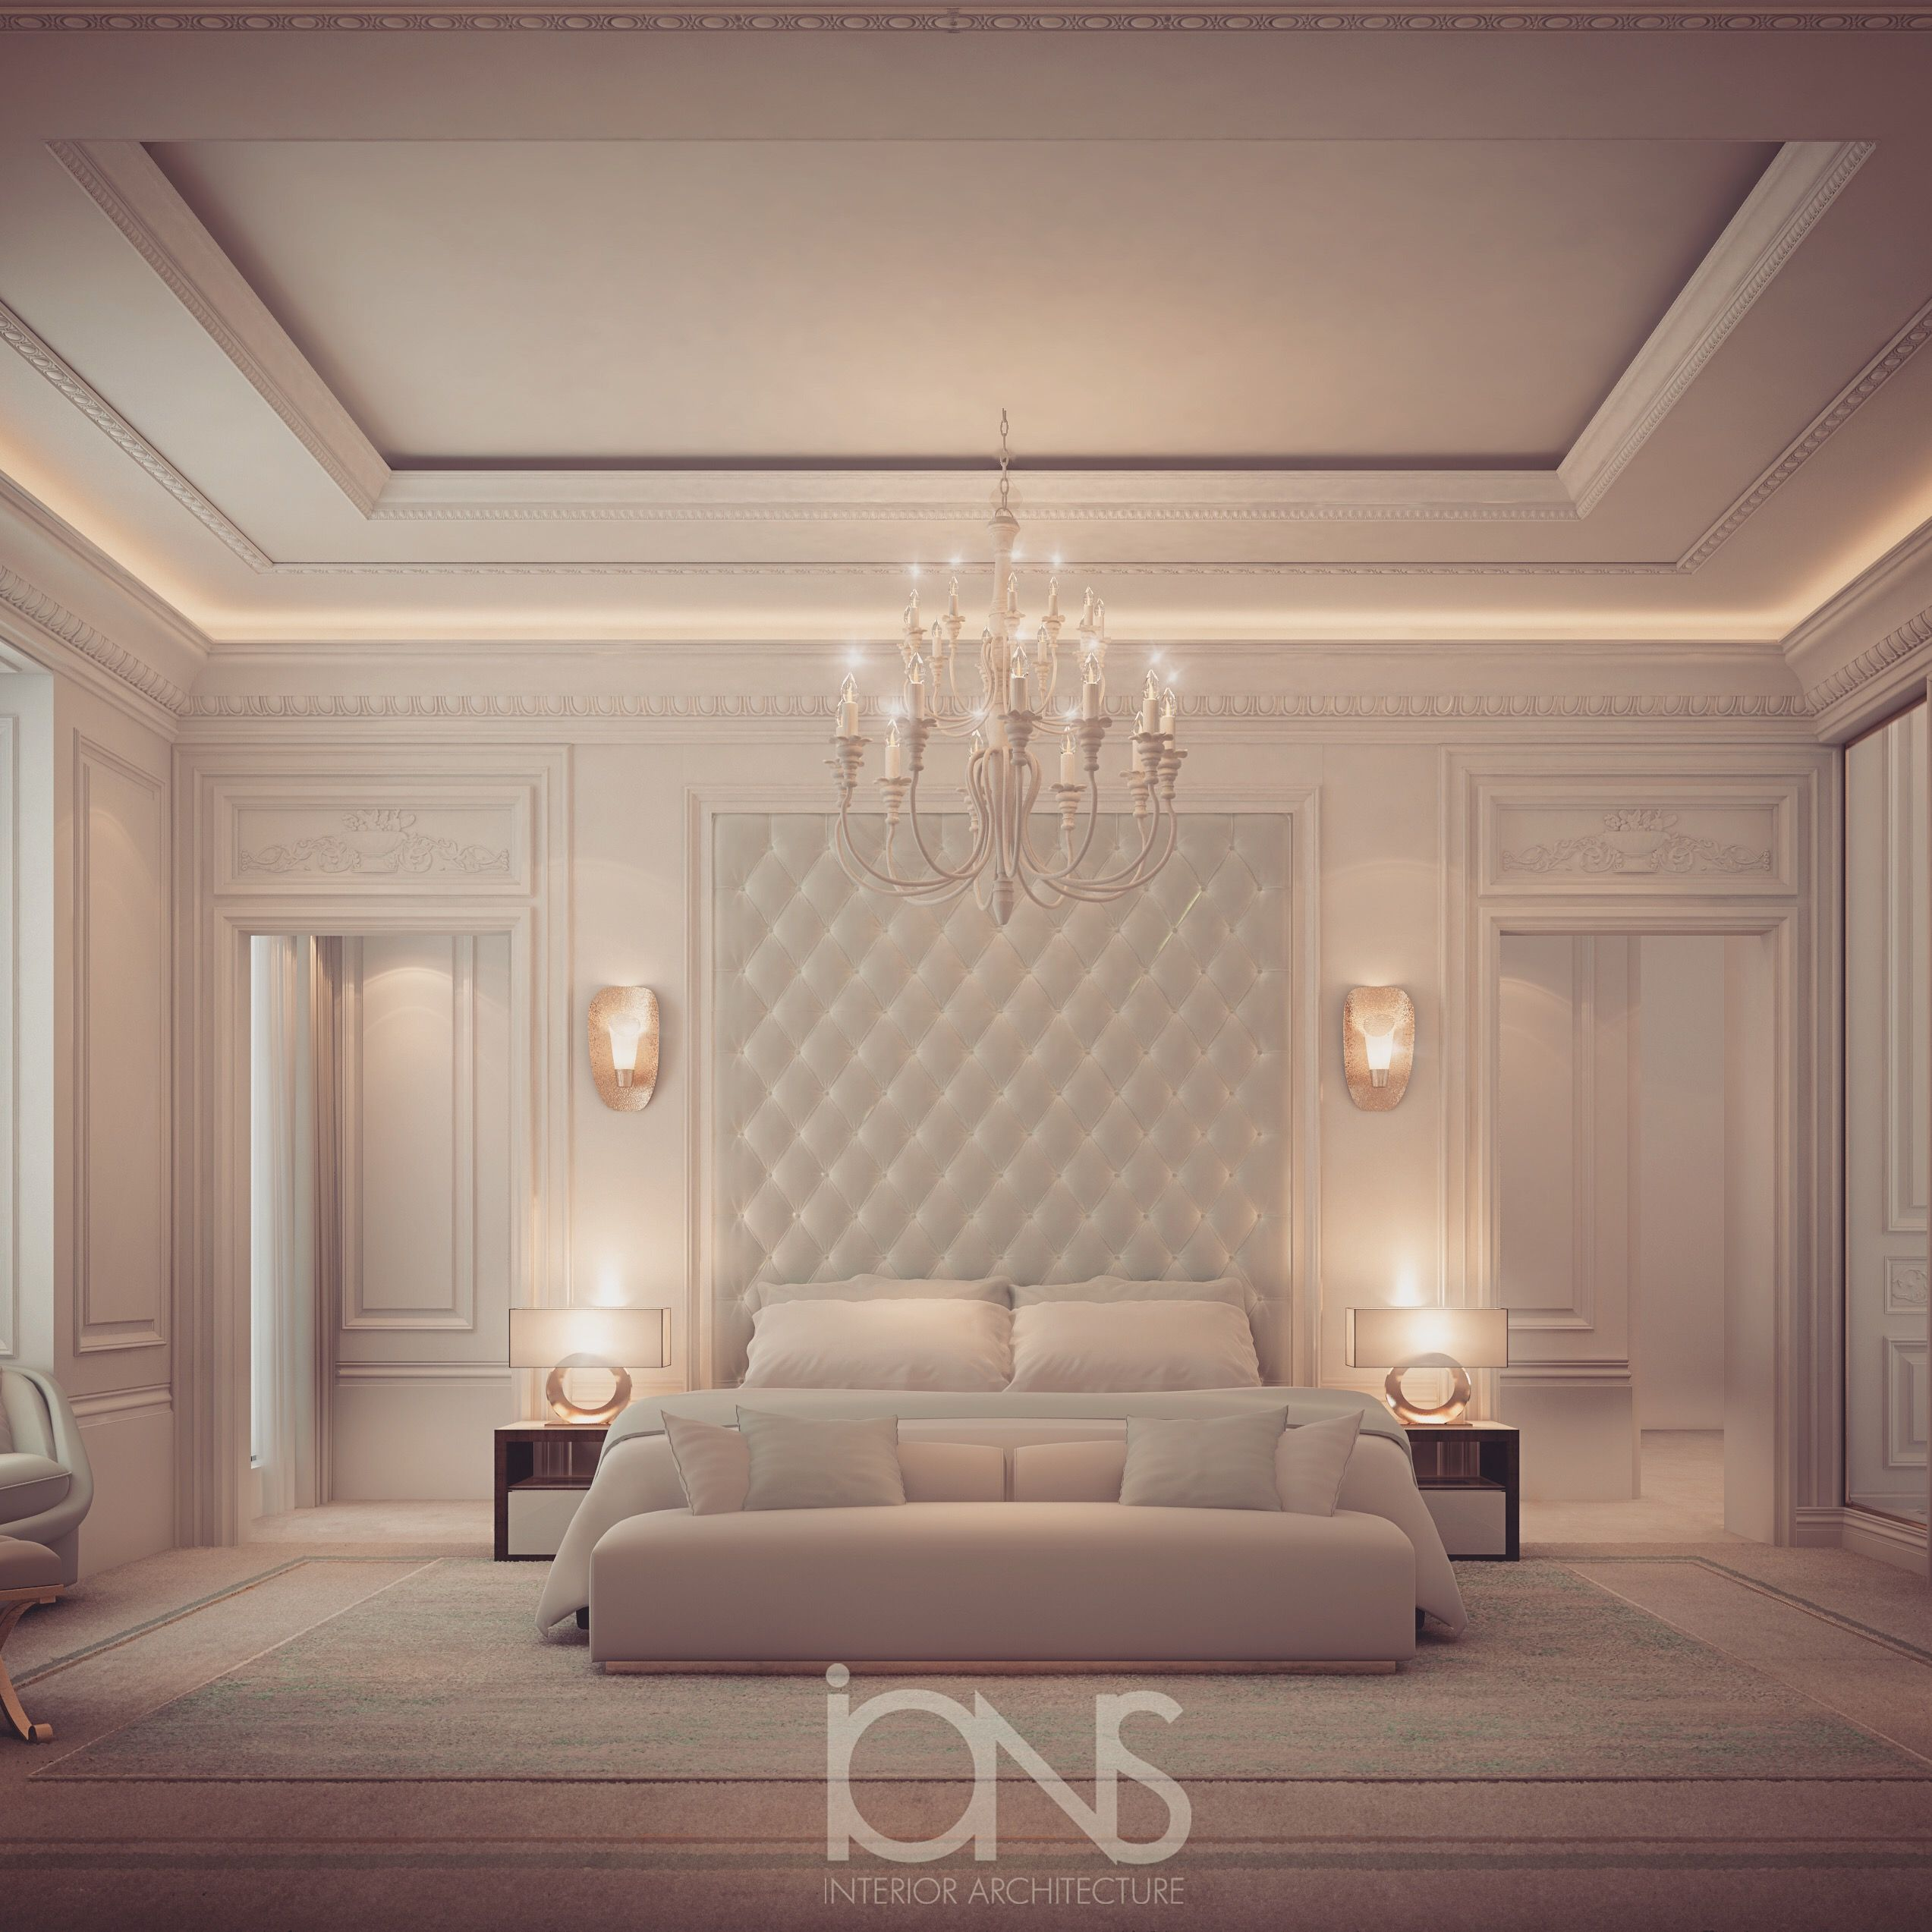 21 Master Bedroom Interior Designs Decorating Ideas: Bedroom Interior By IONS DESIGN